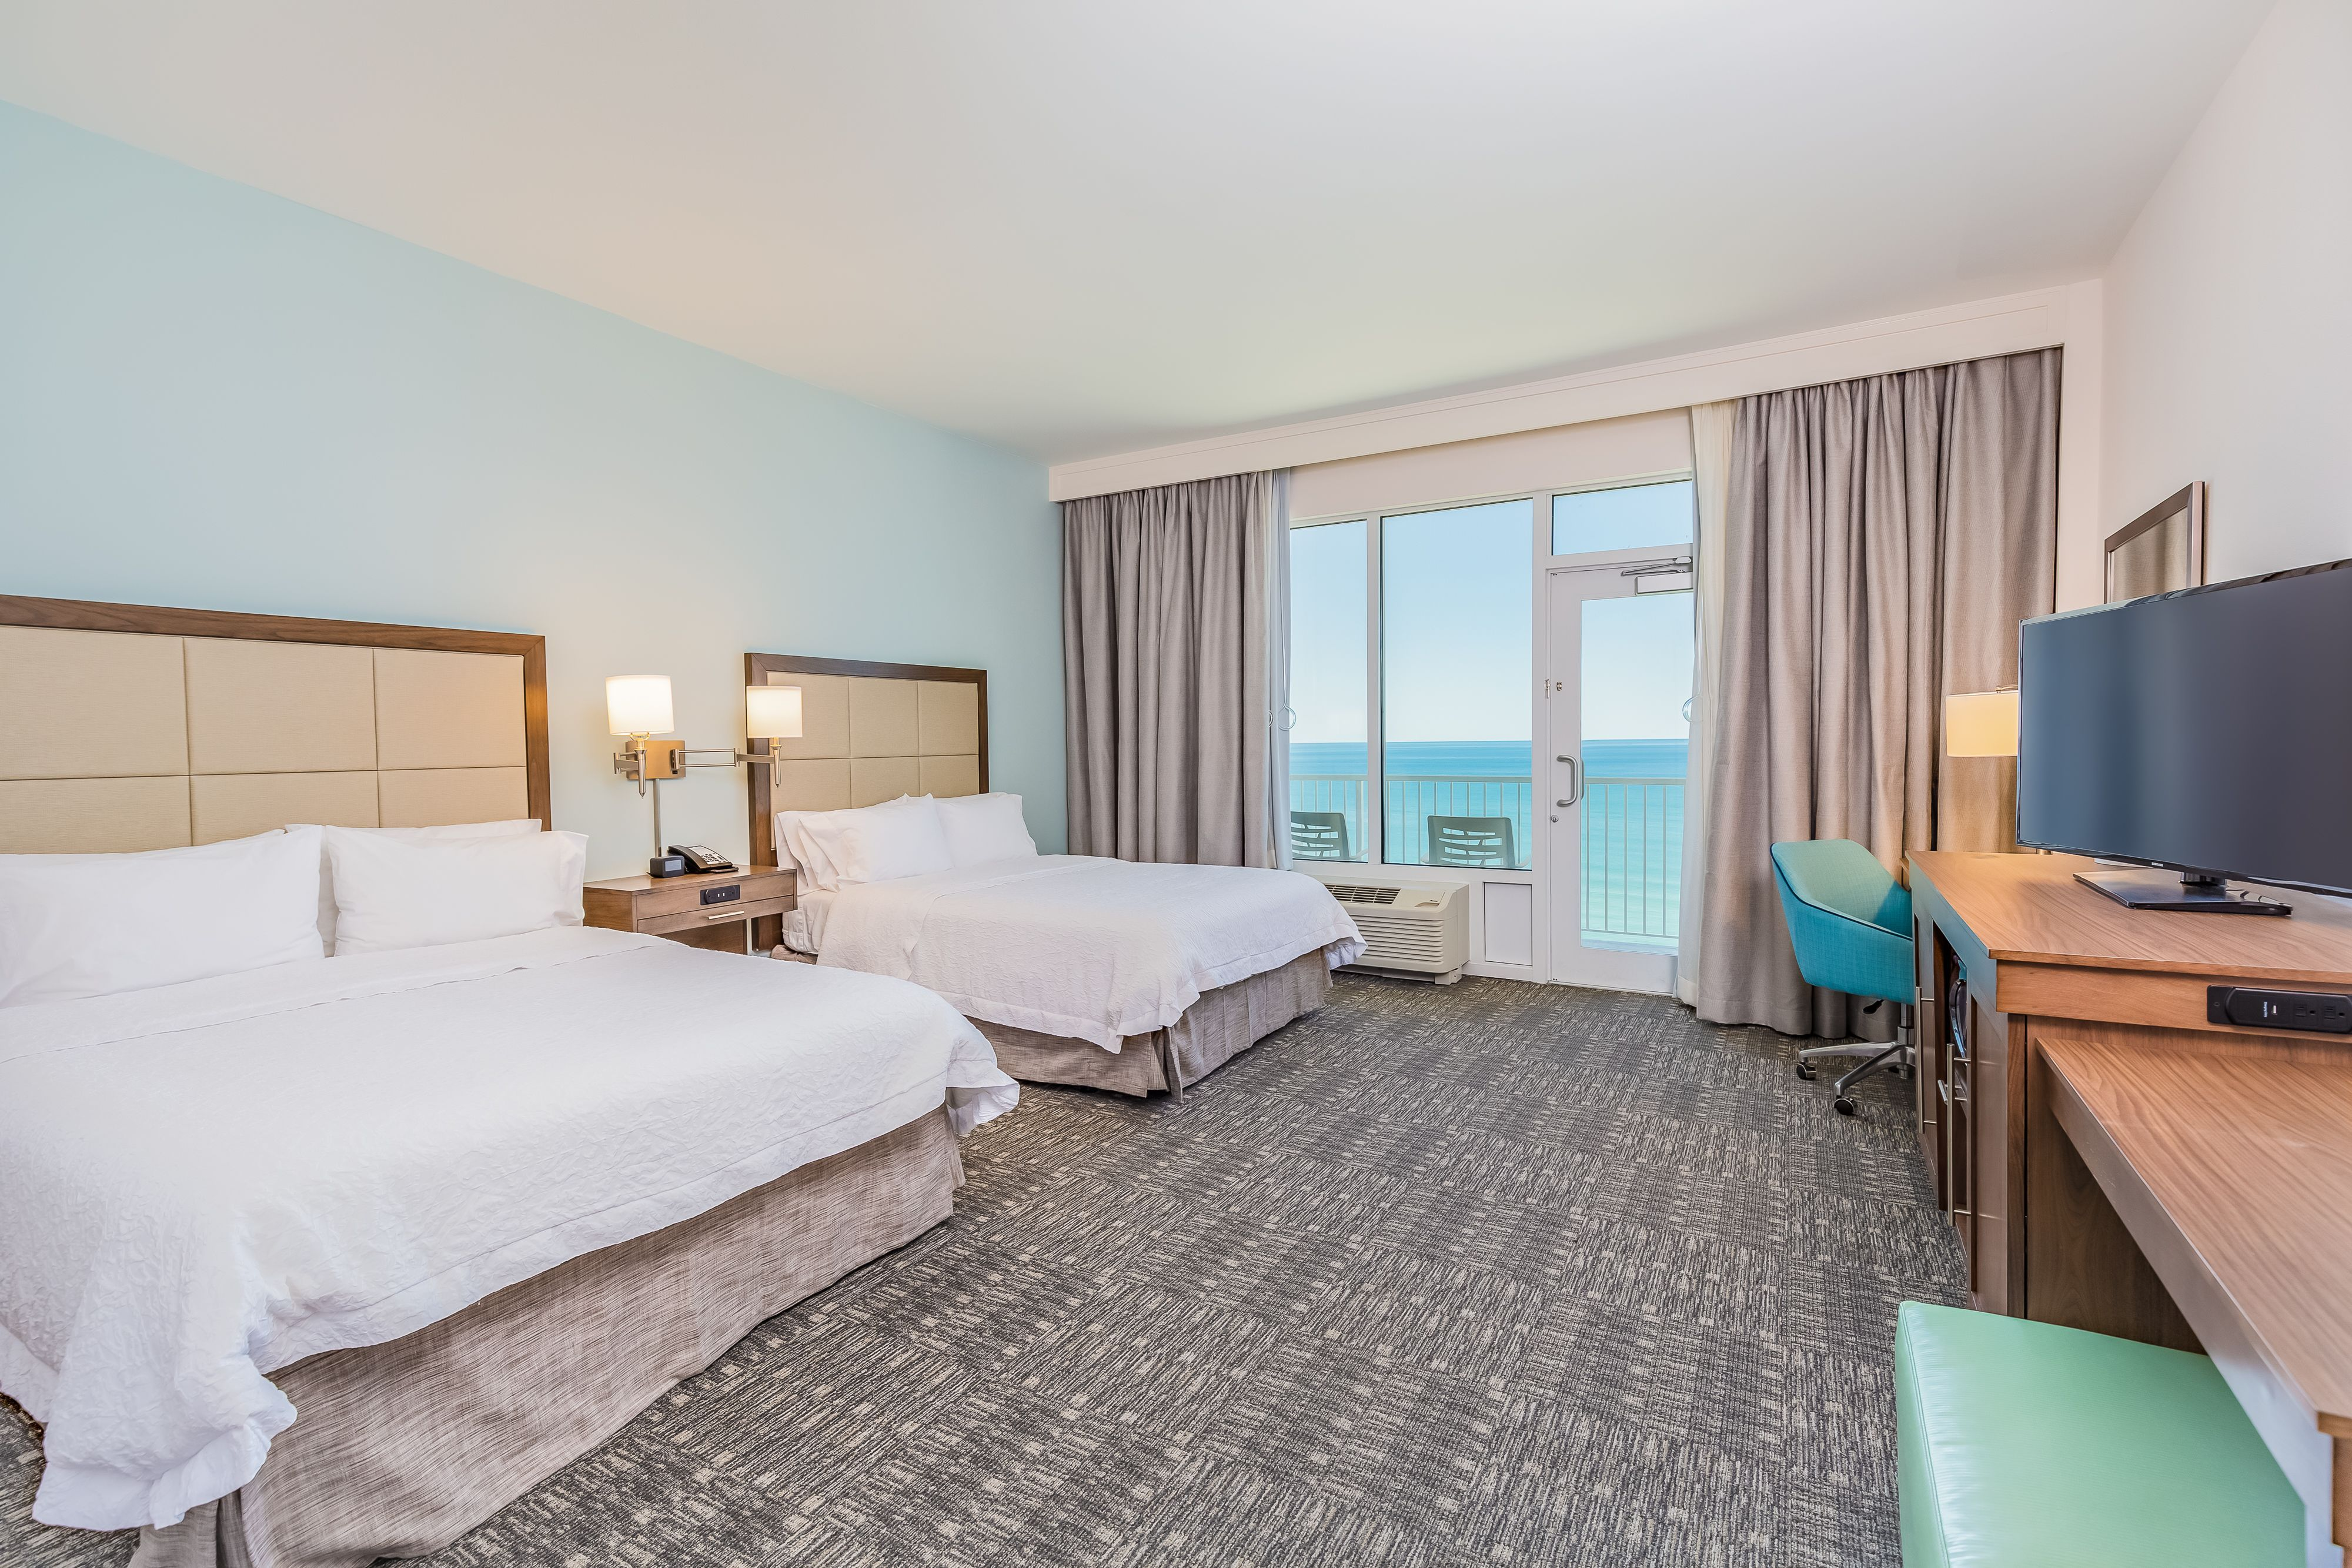 Enter To Win A Stay At Our Beautiful Beachfront Hotel Just Steps